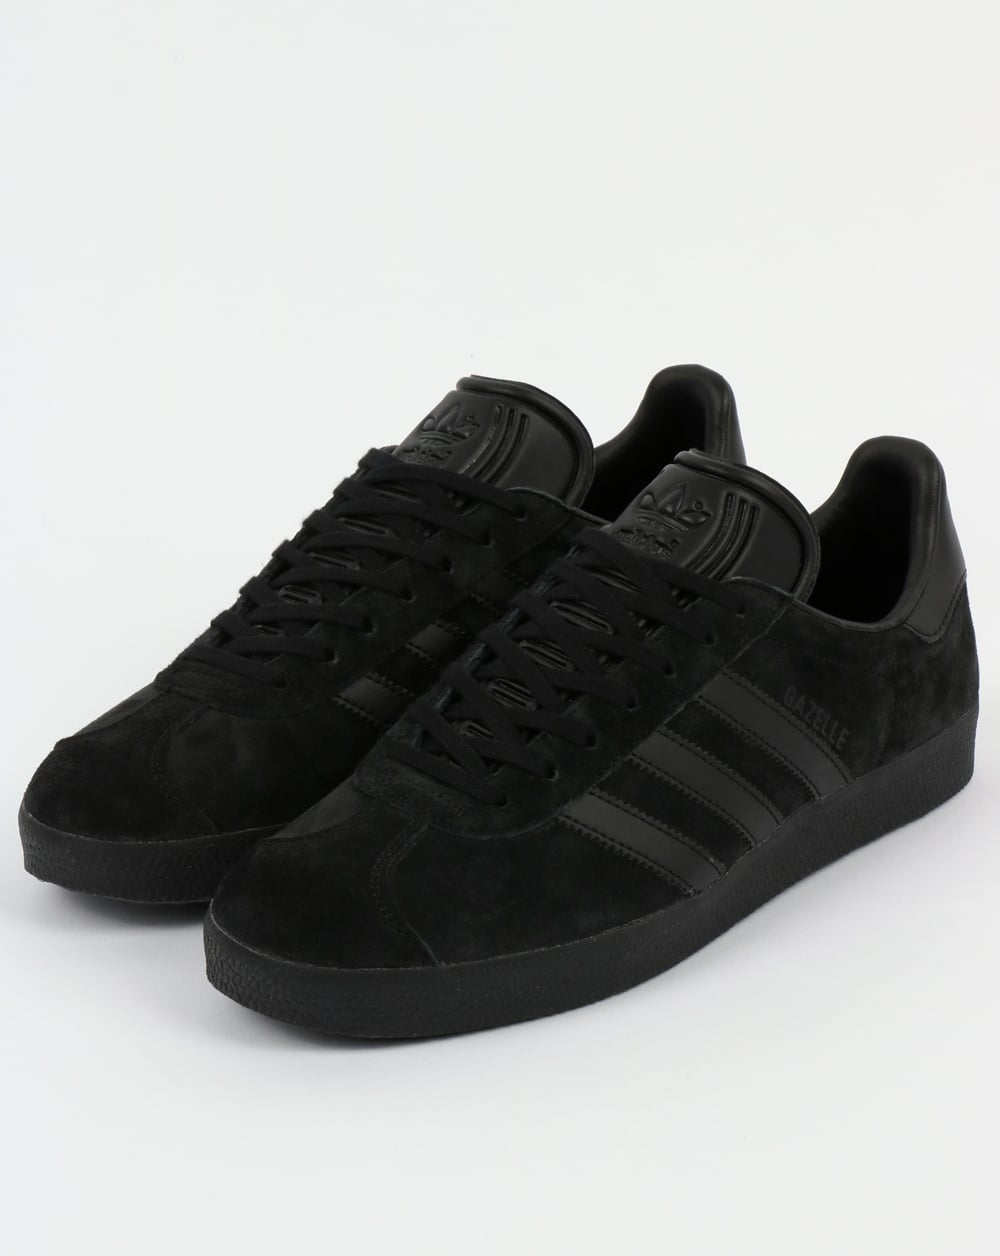 superior quality 5829a 33617 adidas Gazelle 90s black